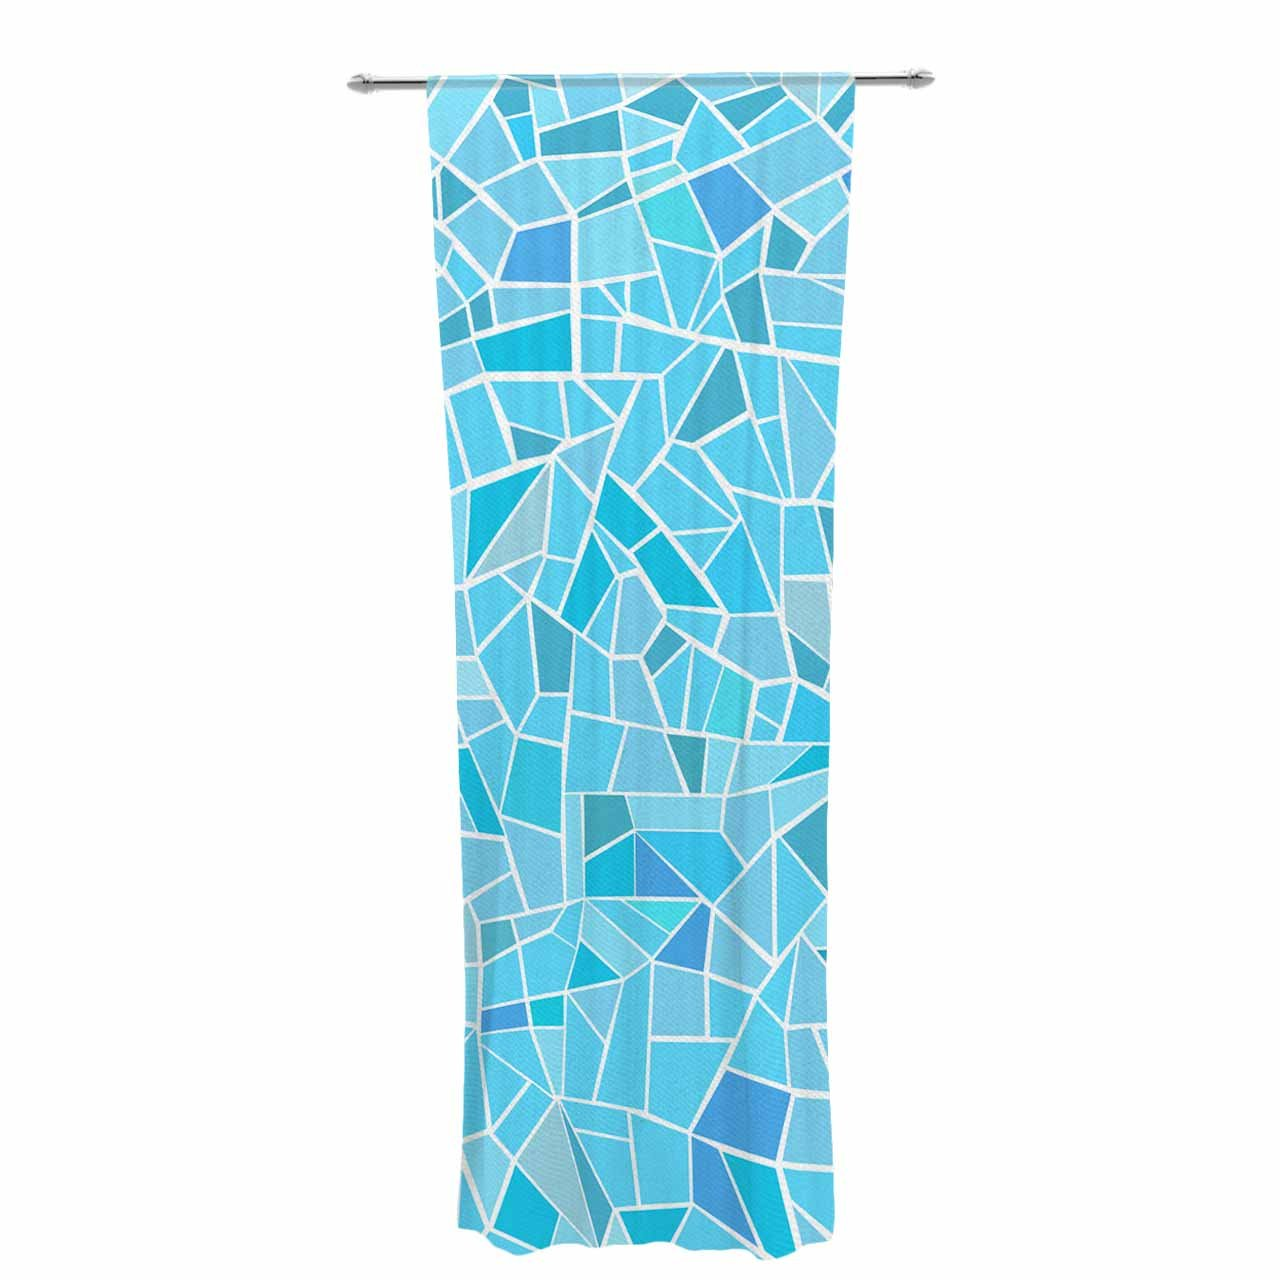 Kess InHouse afe Images Abstract Mosaic Pattern Blue Pastel Illustration Decorative Set, 30' x 84' Sheer Curtains